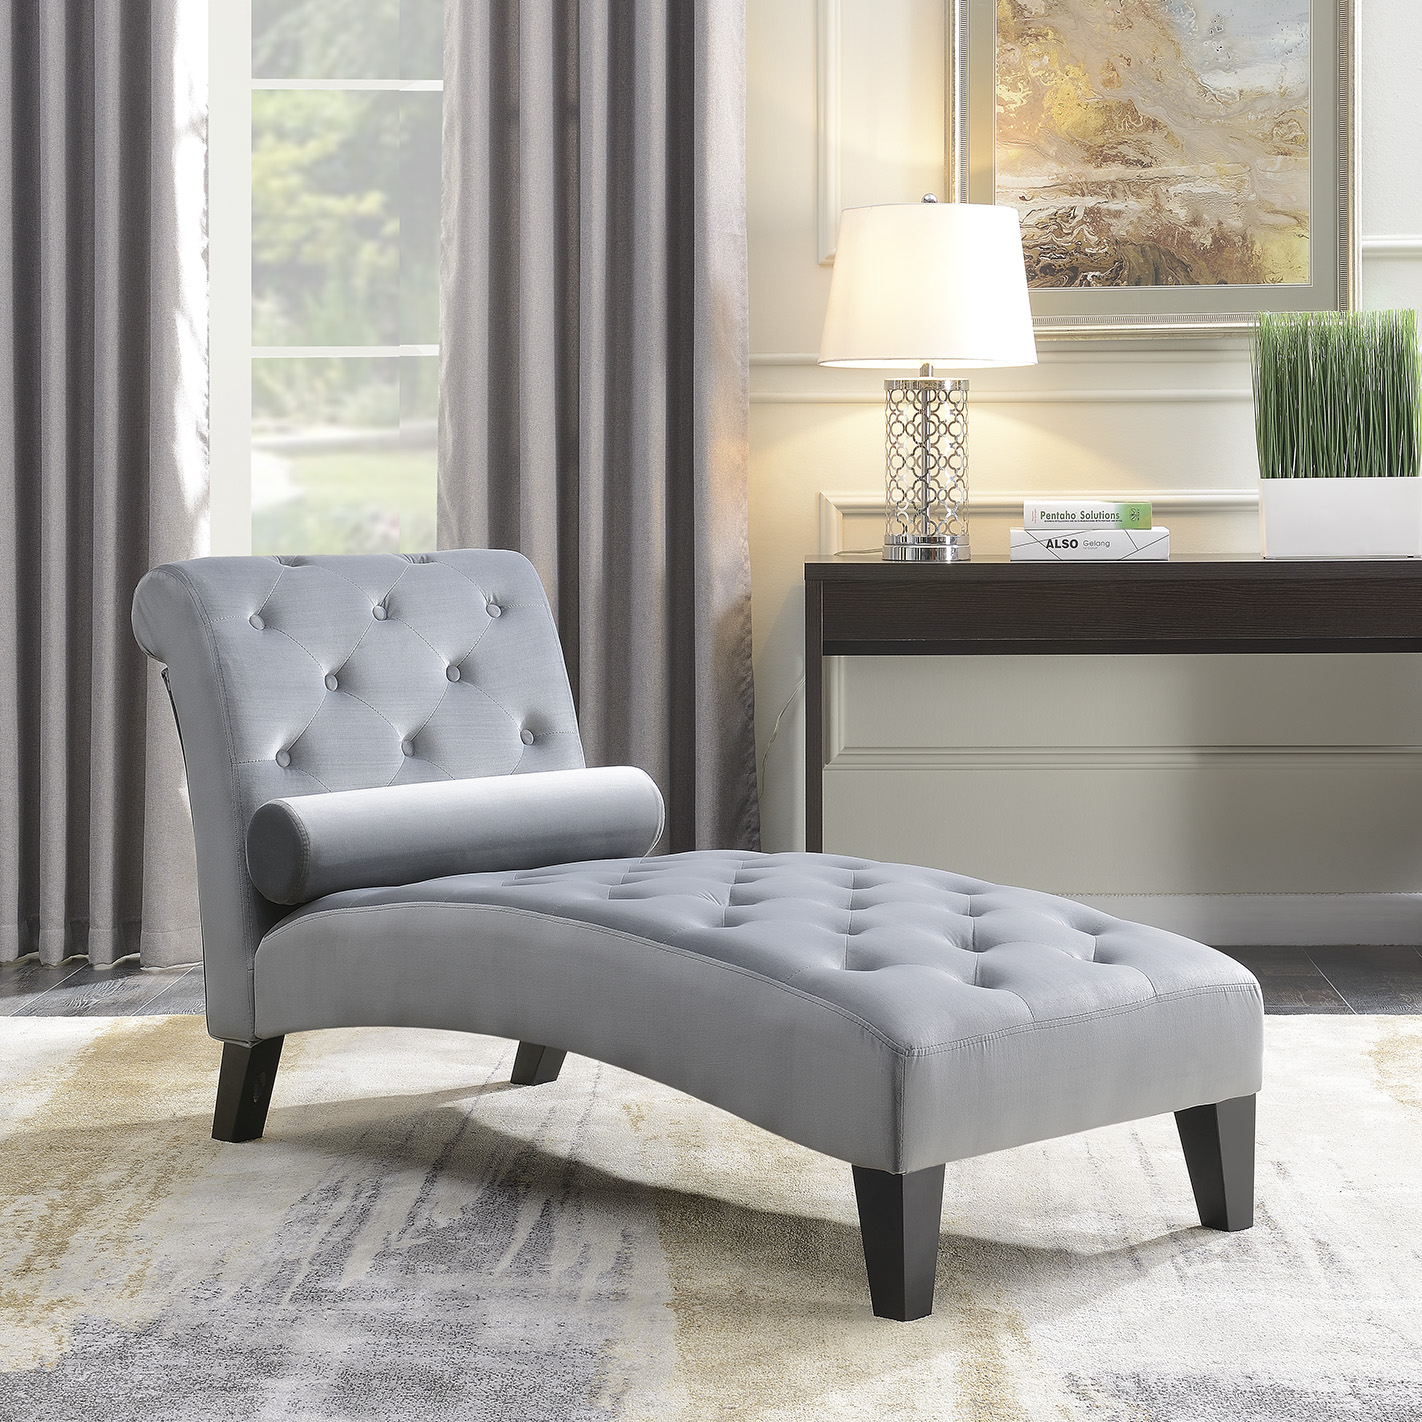 chaise lounges for living room cheap decorating ideas walmart com product image belleze or home office button tufted leisure chair rest sofa lounge couch